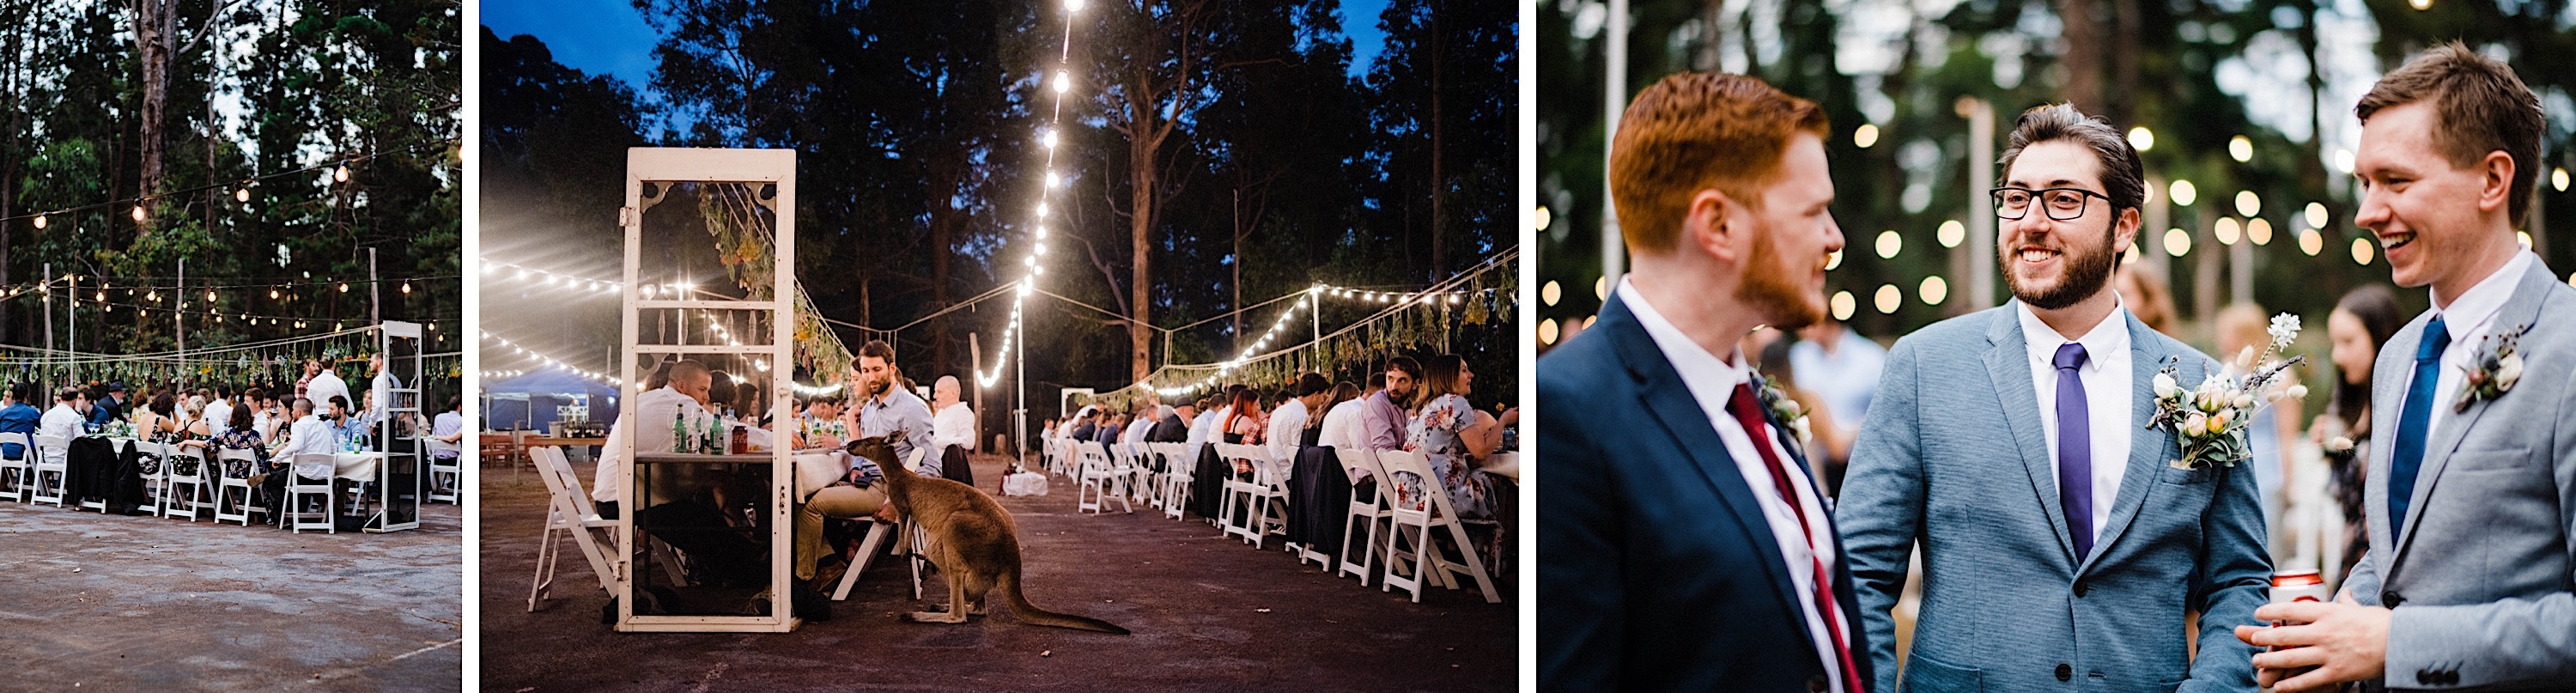 Documentary Wedding Photography of Kangaroos & Guests eating their dinner at a Donnelly River Wedding Reception.